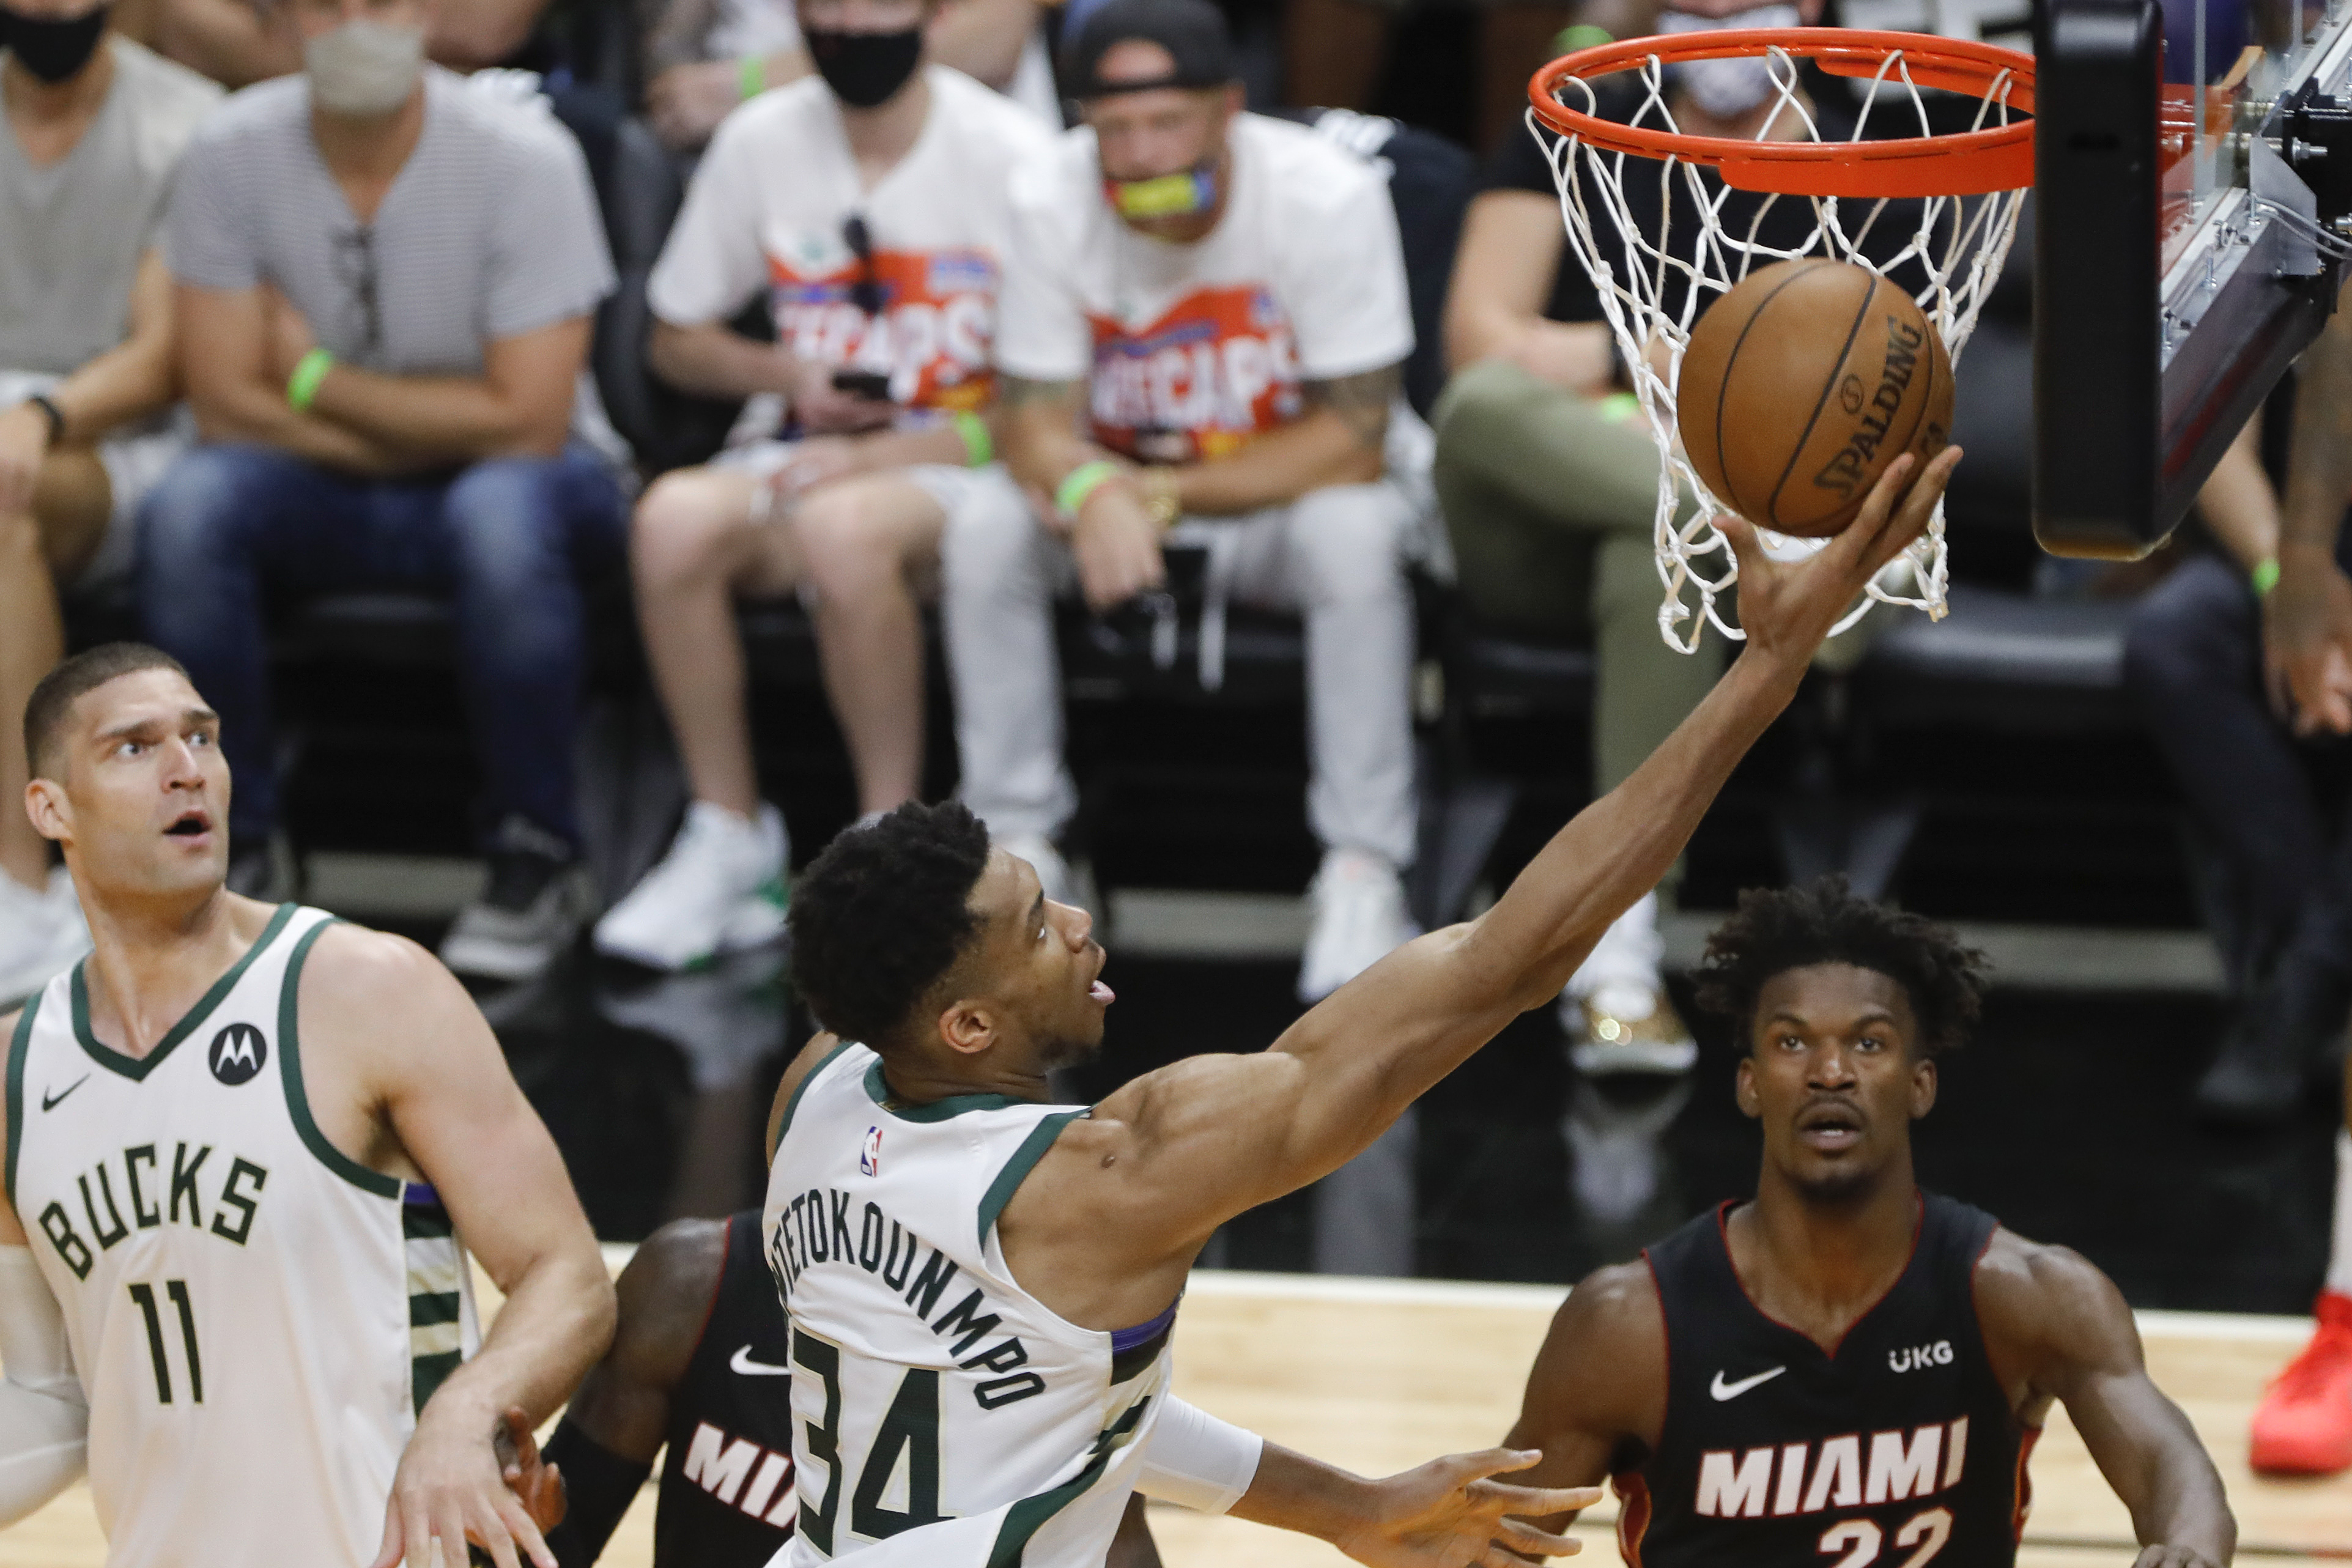 May 29, 2021; Miami, Florida, USA; Milwaukee Bucks forward Giannis Antetokounmpo (34) shoots the ball against the Miami Heat during the fourth quarter of game four in the first round of the 2021 NBA Playoffs at American Airlines Arena. Mandatory Credit: Sam Navarro-USA TODAY Sports